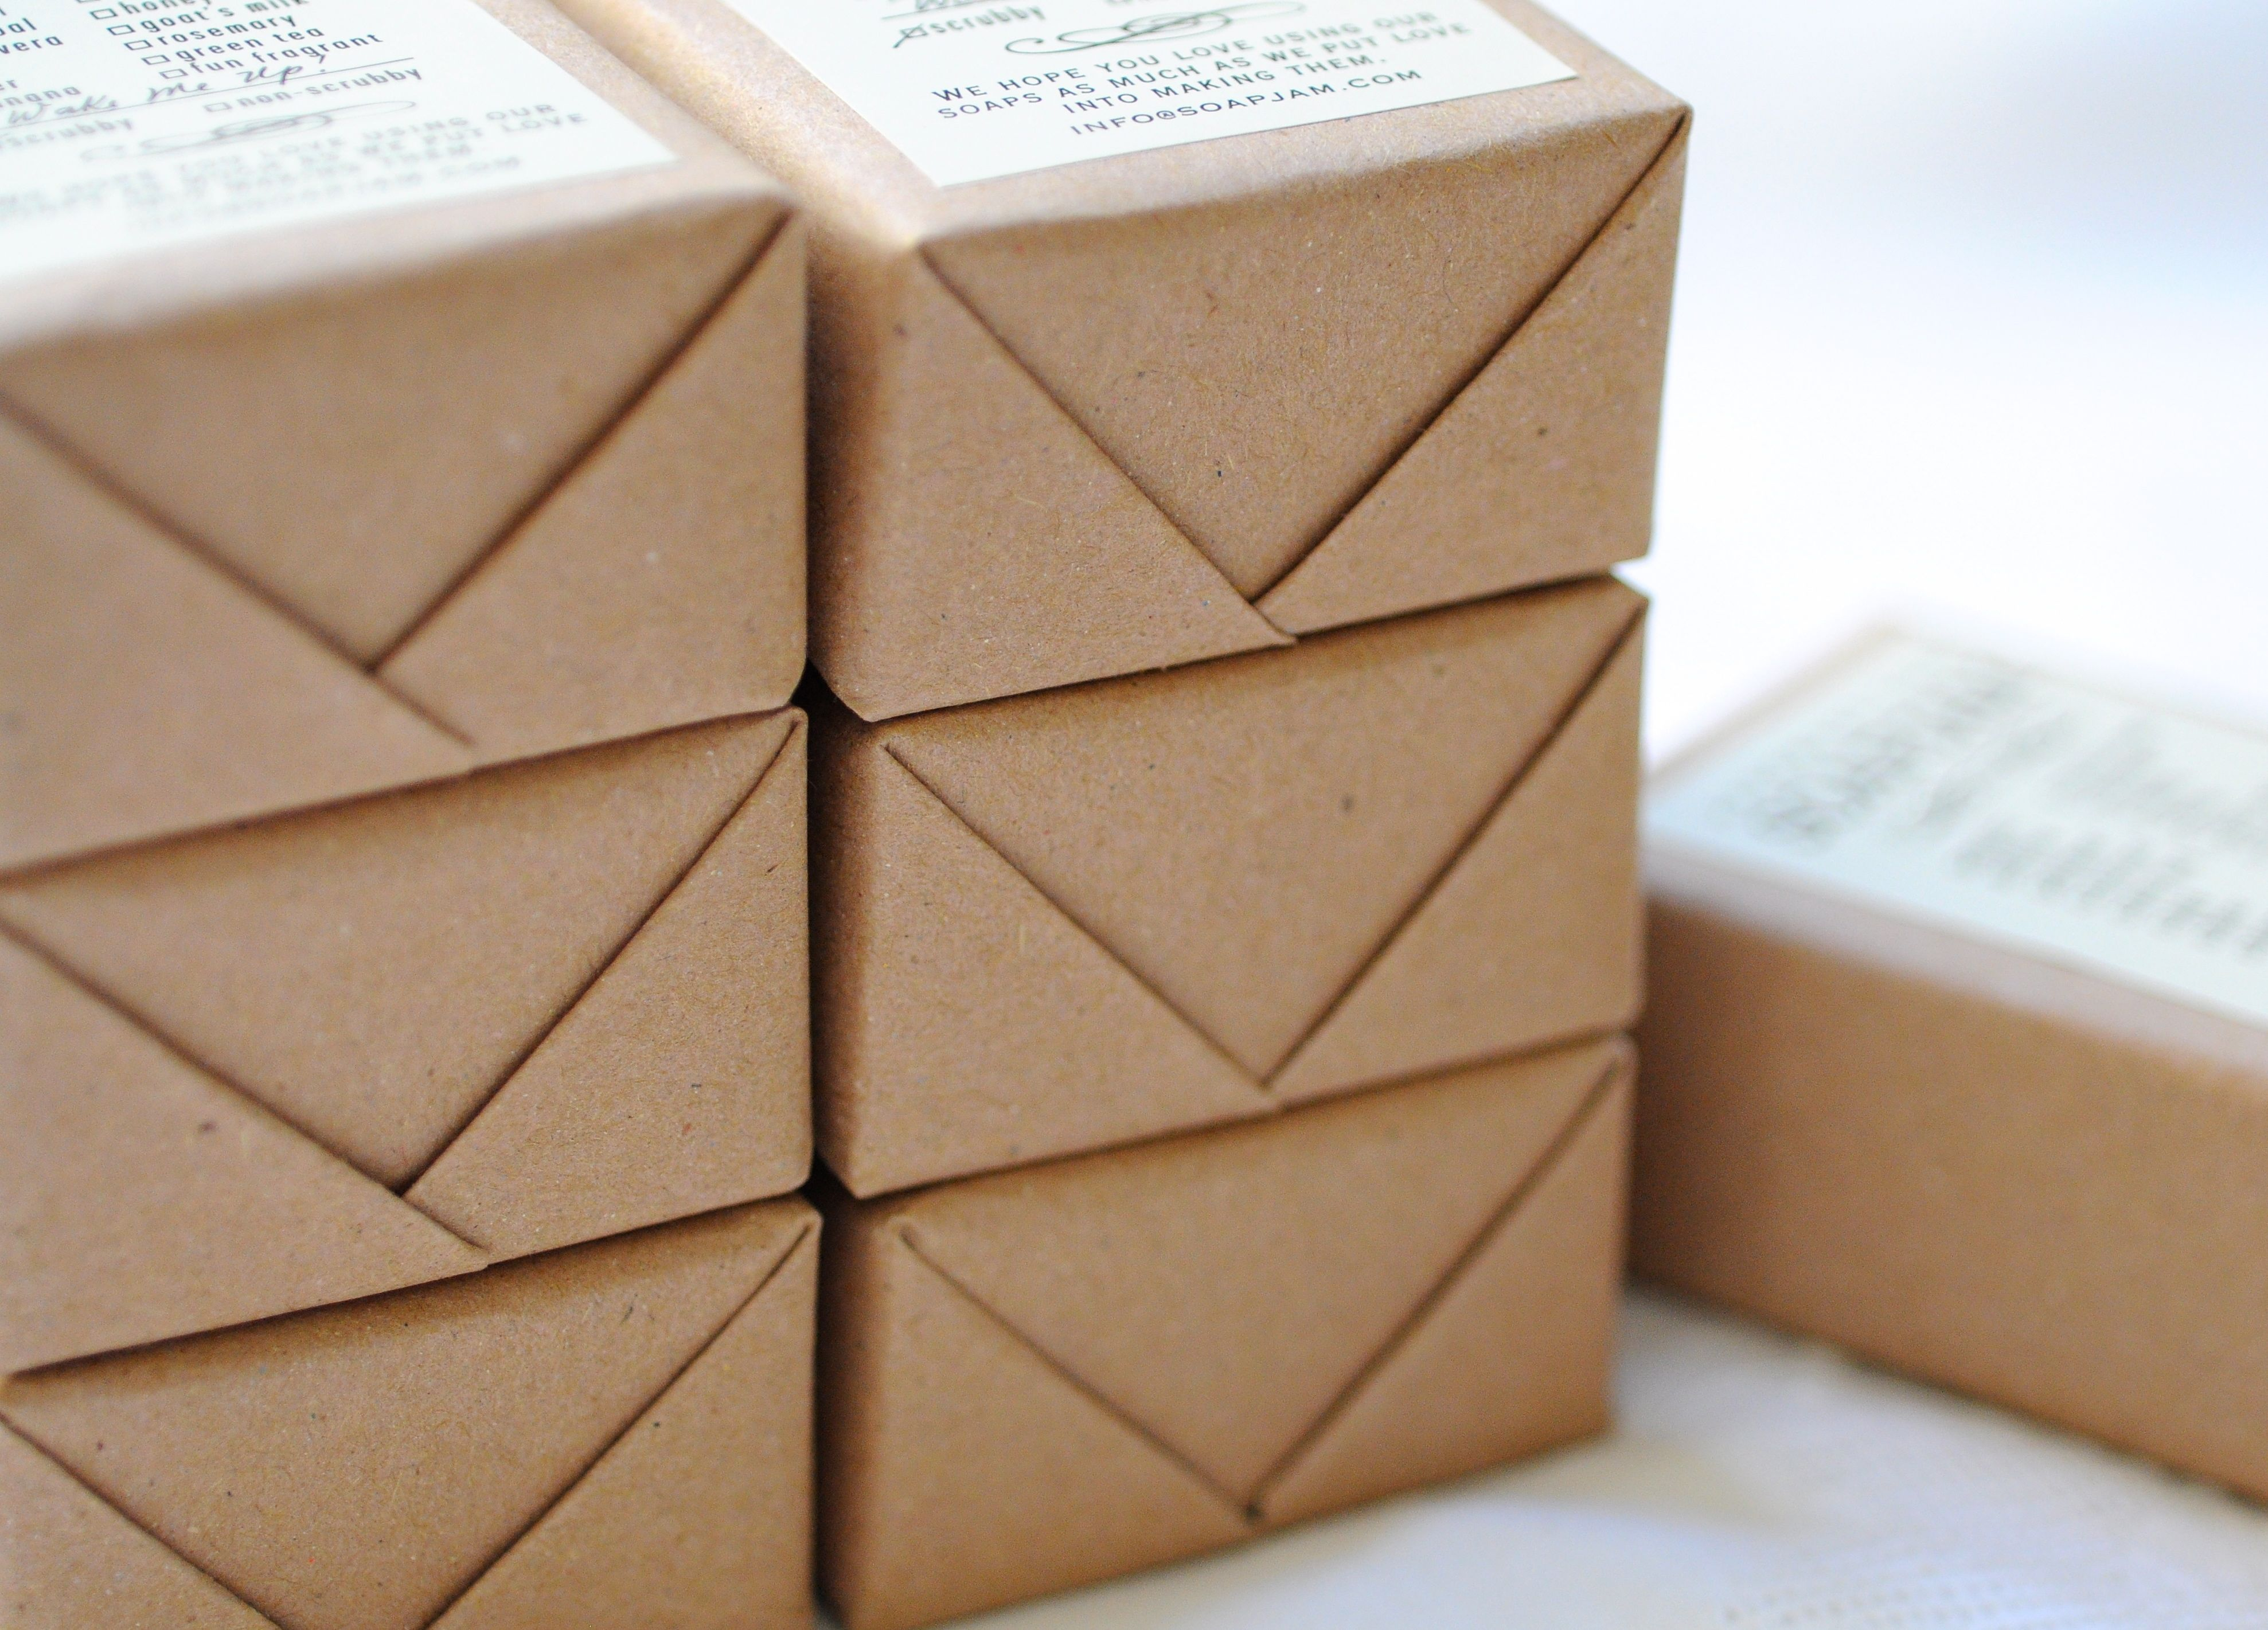 packing paper Ranpak's paper-based packaging systems offer eco-friendly, cost-effective solutions tailored to your needs, we ensure that your packing operation works smoothly and your products arrive safely at their destination.